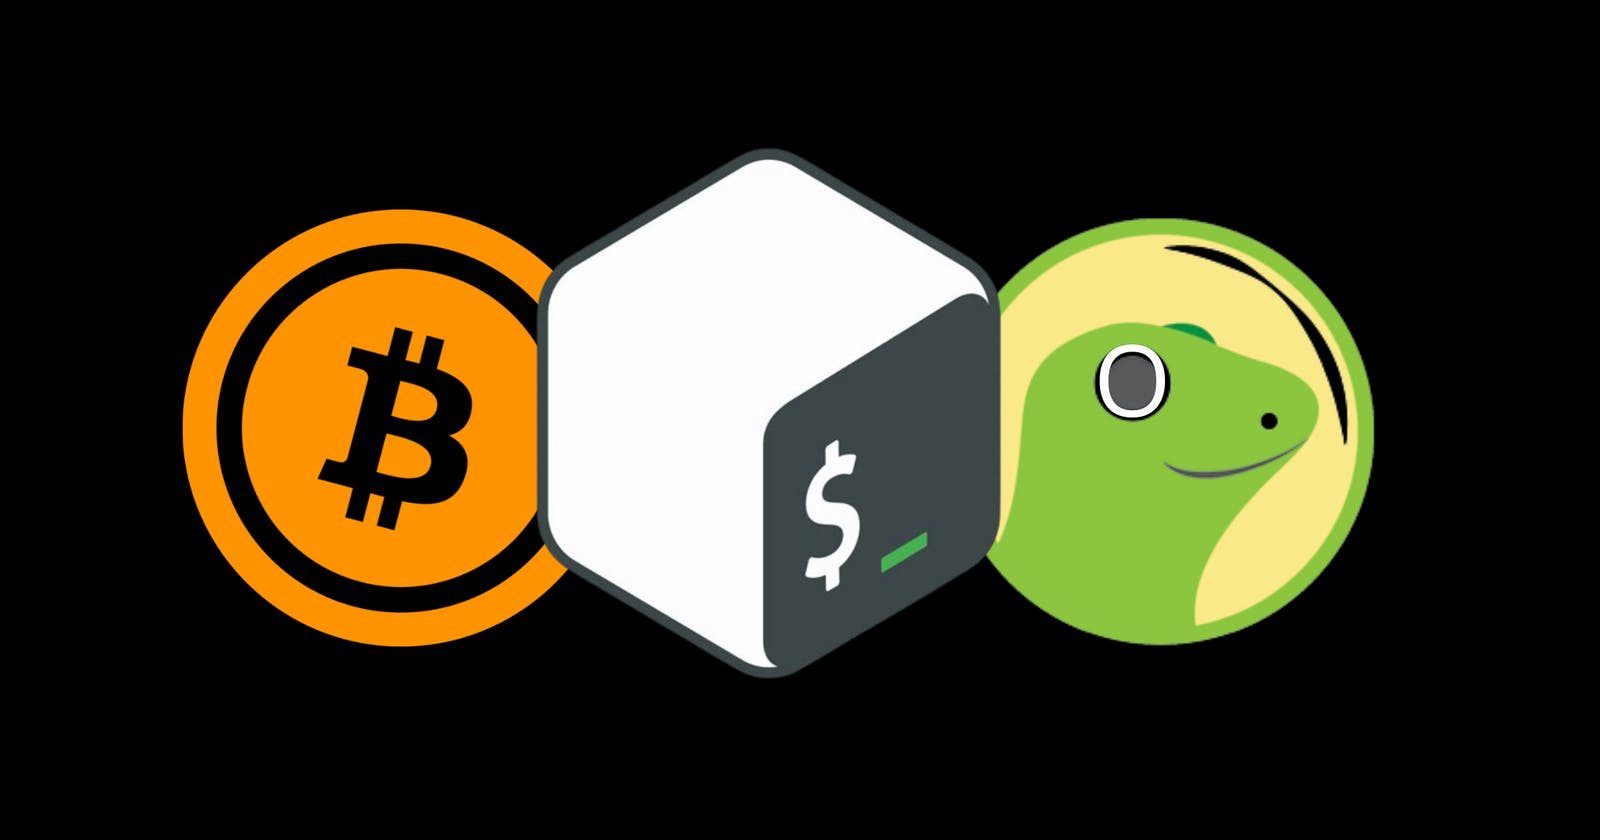 Cryptocurrency Price Scrapping using BASH and Coingecko API